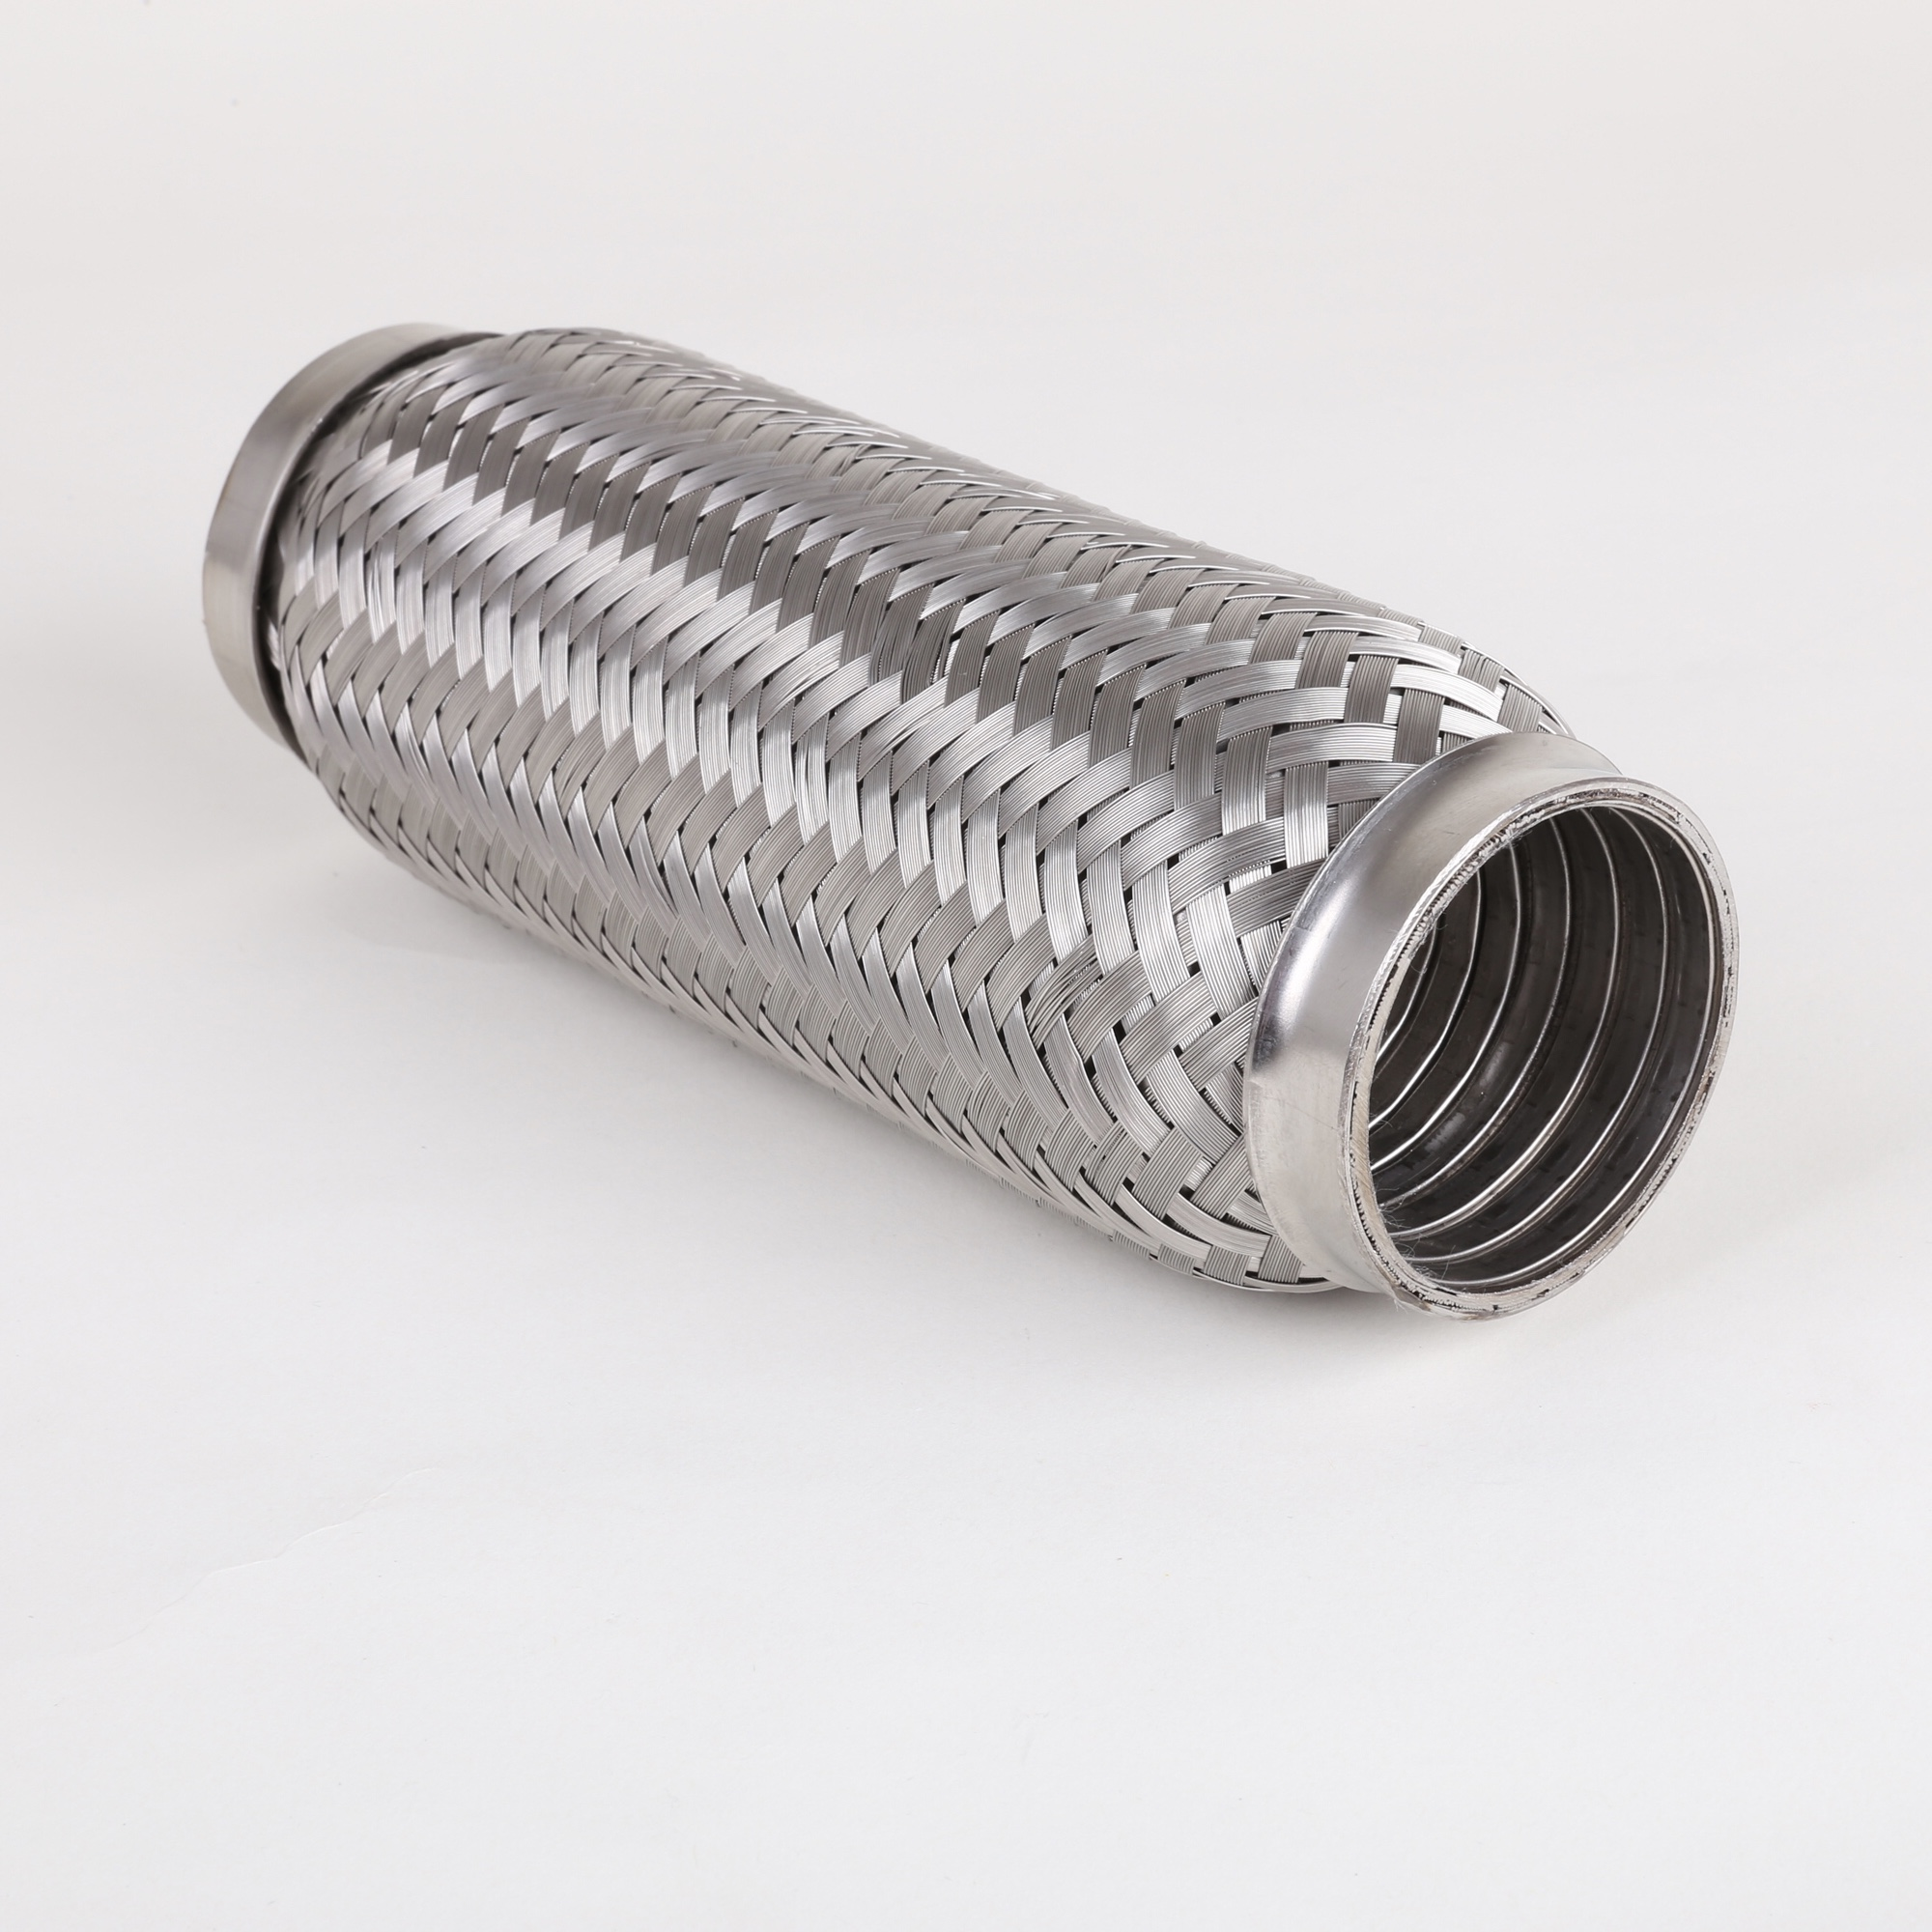 Industrial 1-3/4 inch stainless steel flexible exhaust hose